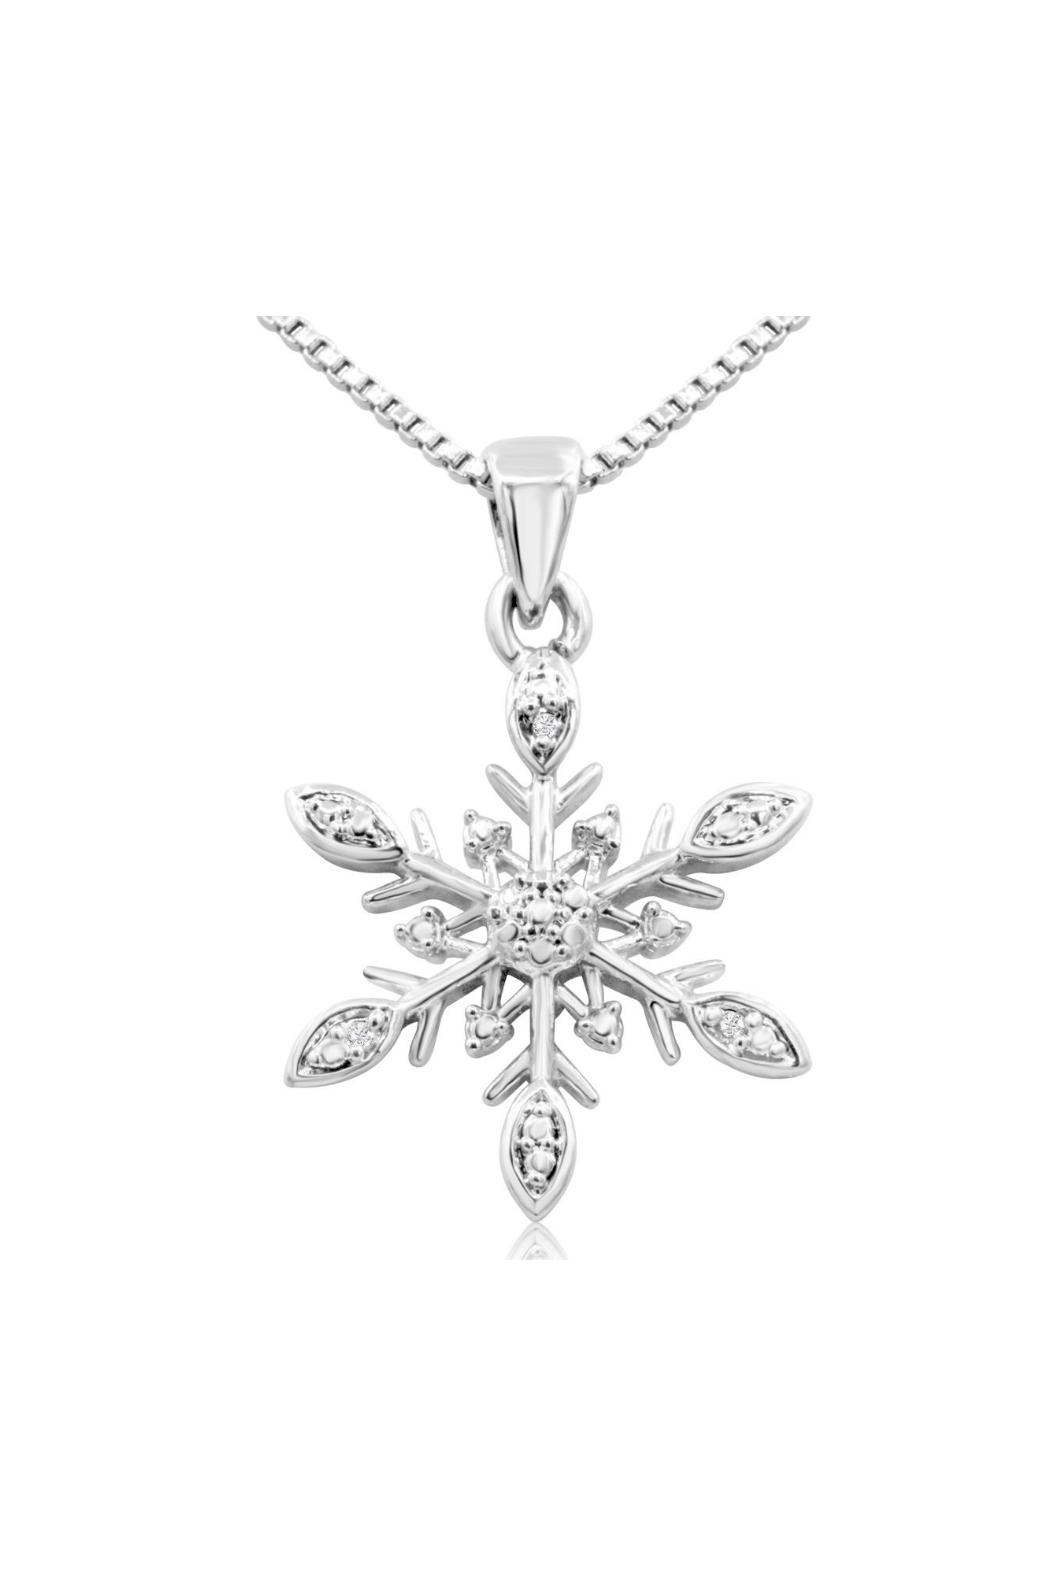 joe product eq davies equilibrium necklace christmas gifts snowflake temptation sparkle xmas